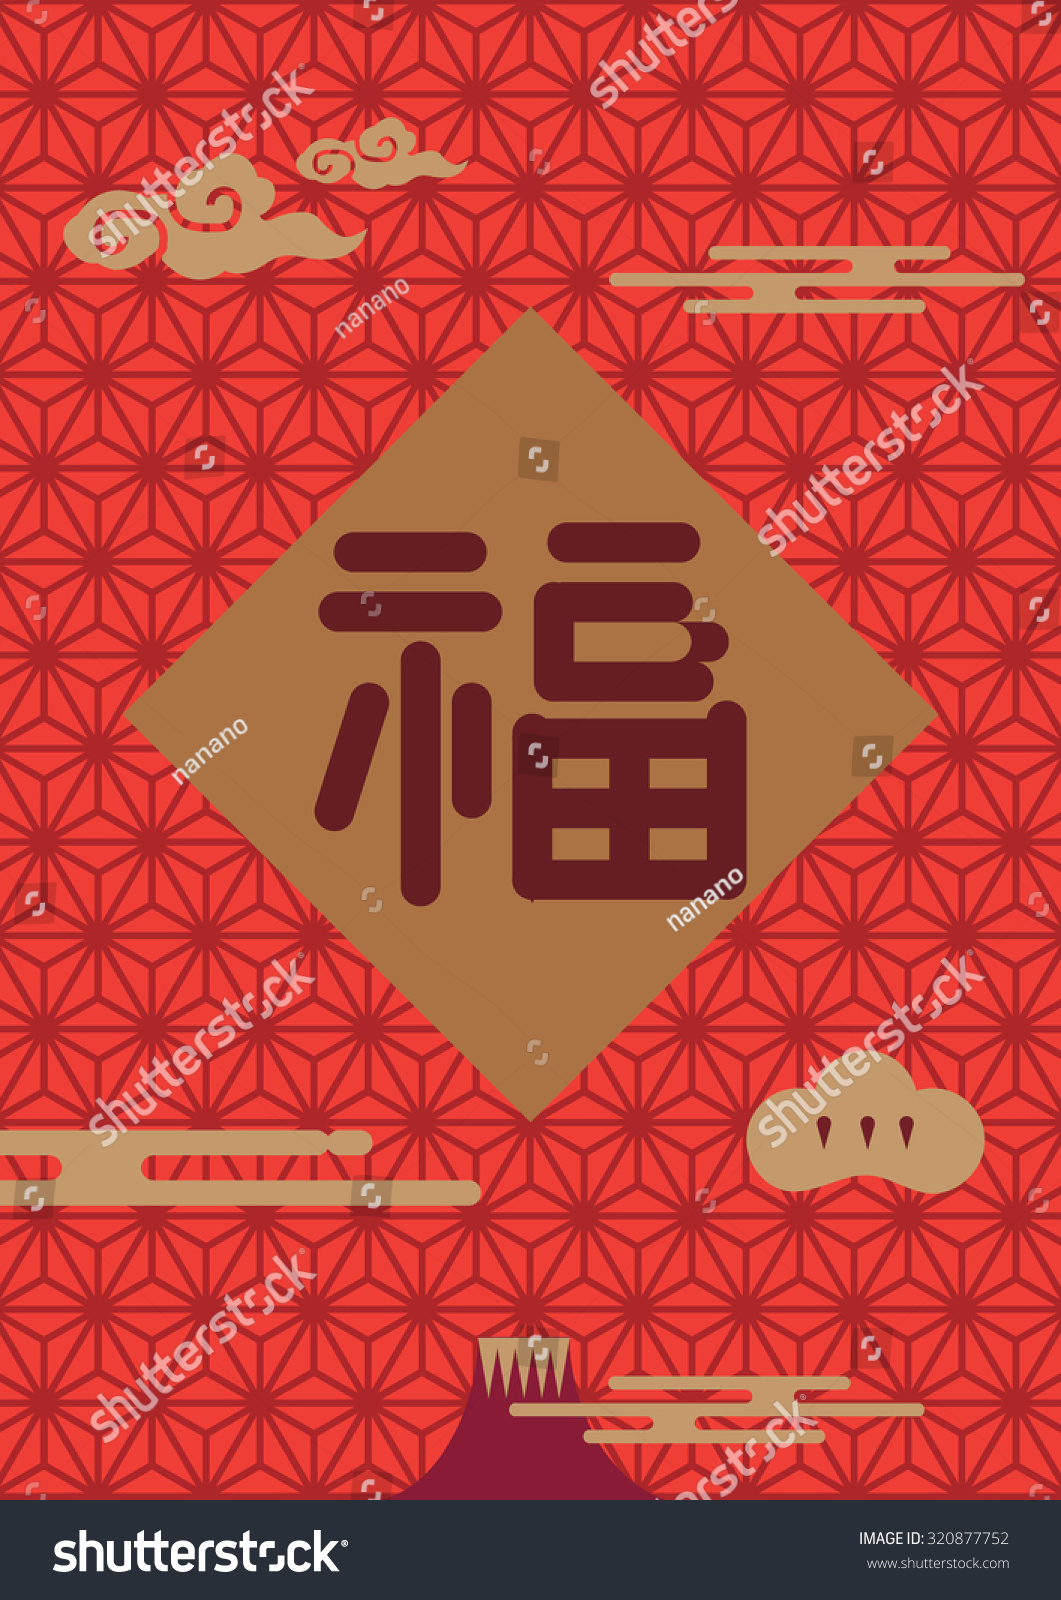 Chinese new year greetings 2016 year stock vector royalty free chinese new year greetings 2016 year of monkey chinese element blessing in english m4hsunfo